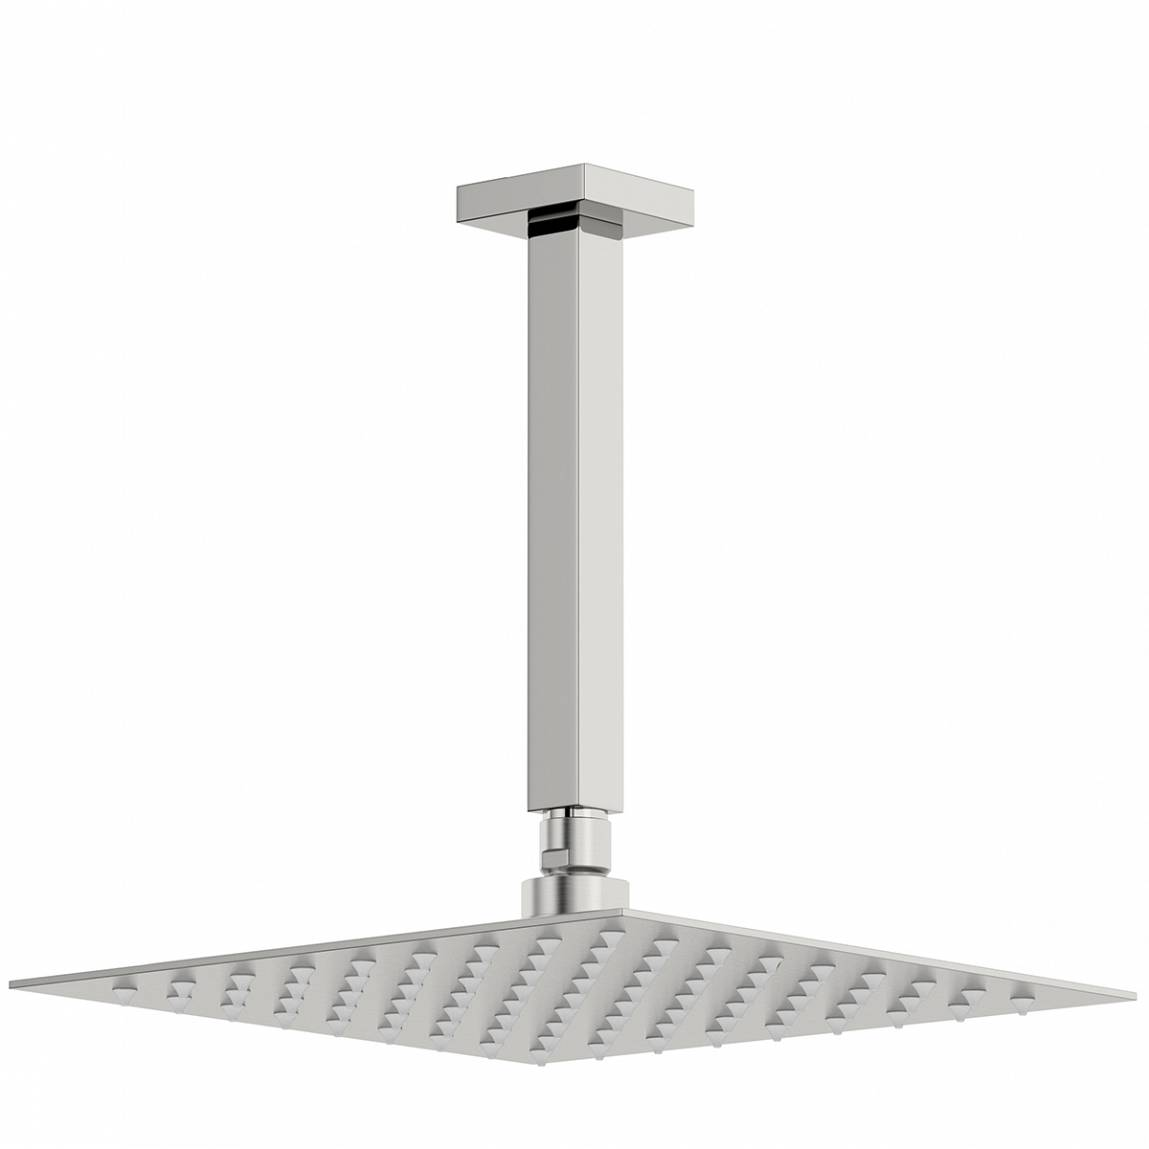 Image of Incus 250mm Shower Head & Square Ceiling Arm